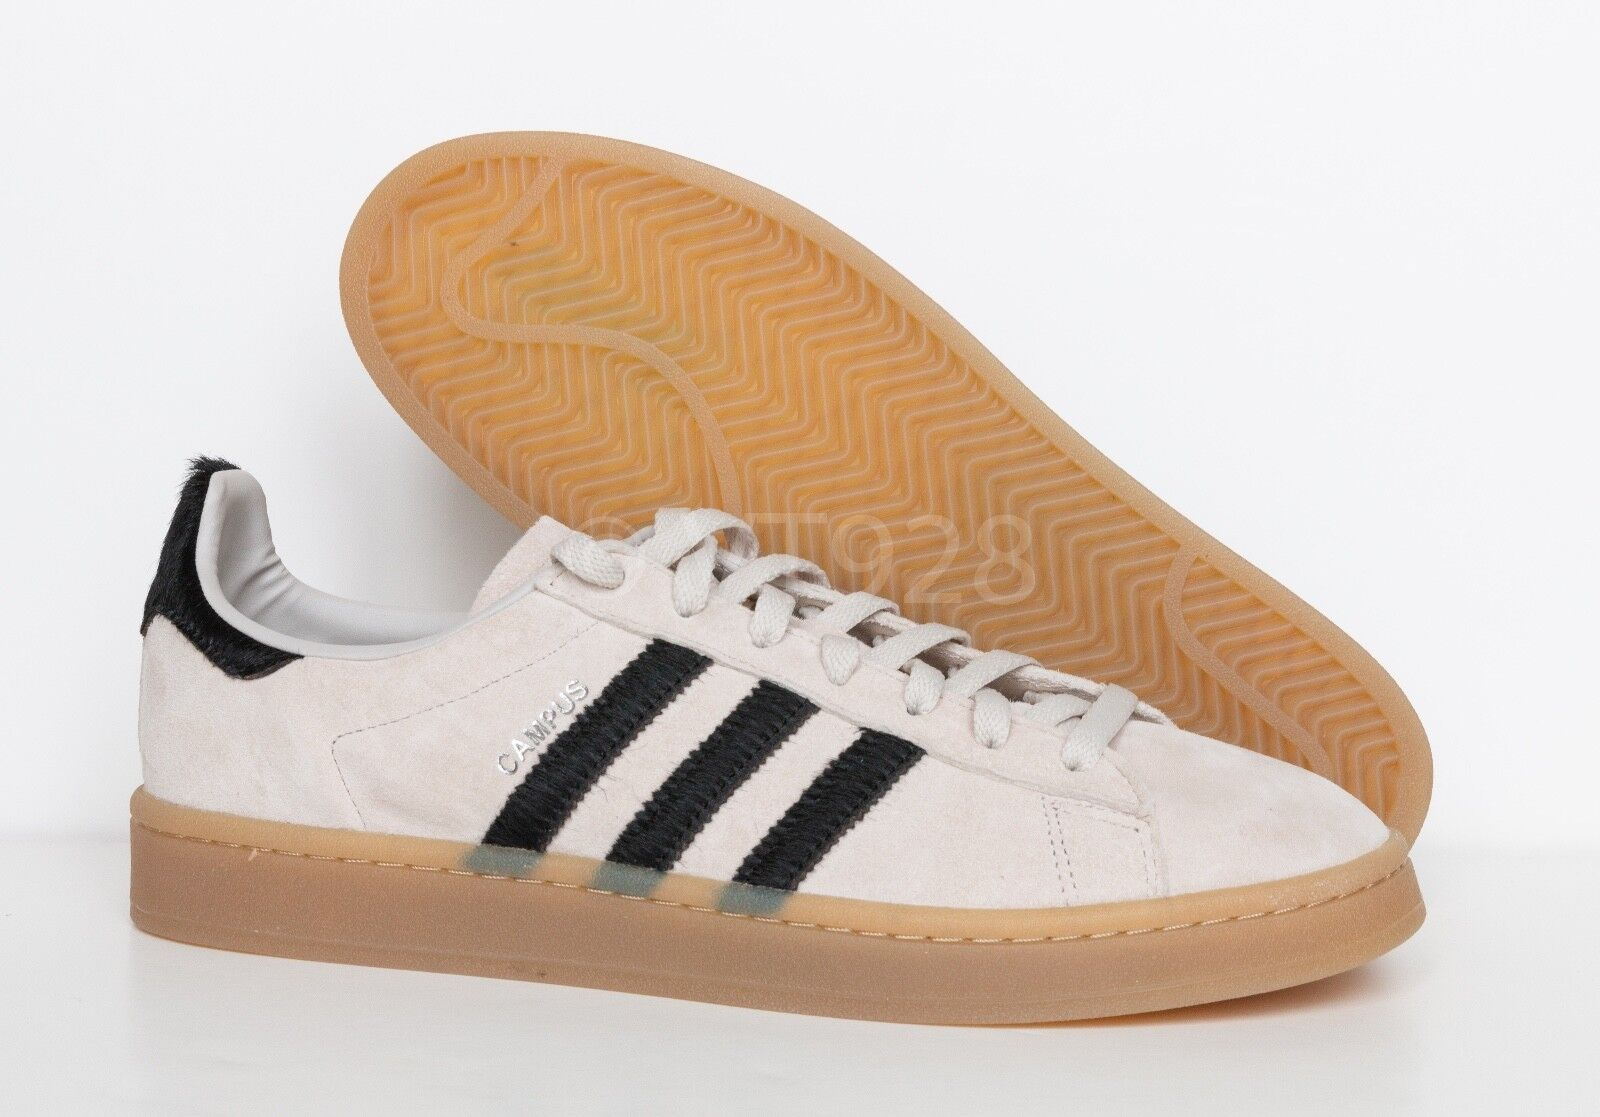 NEW ADIDAS CAMP  SUEDE Uomo SHOES ALL SIZES BZ0072 THE ONLY ONE ON EBAY!